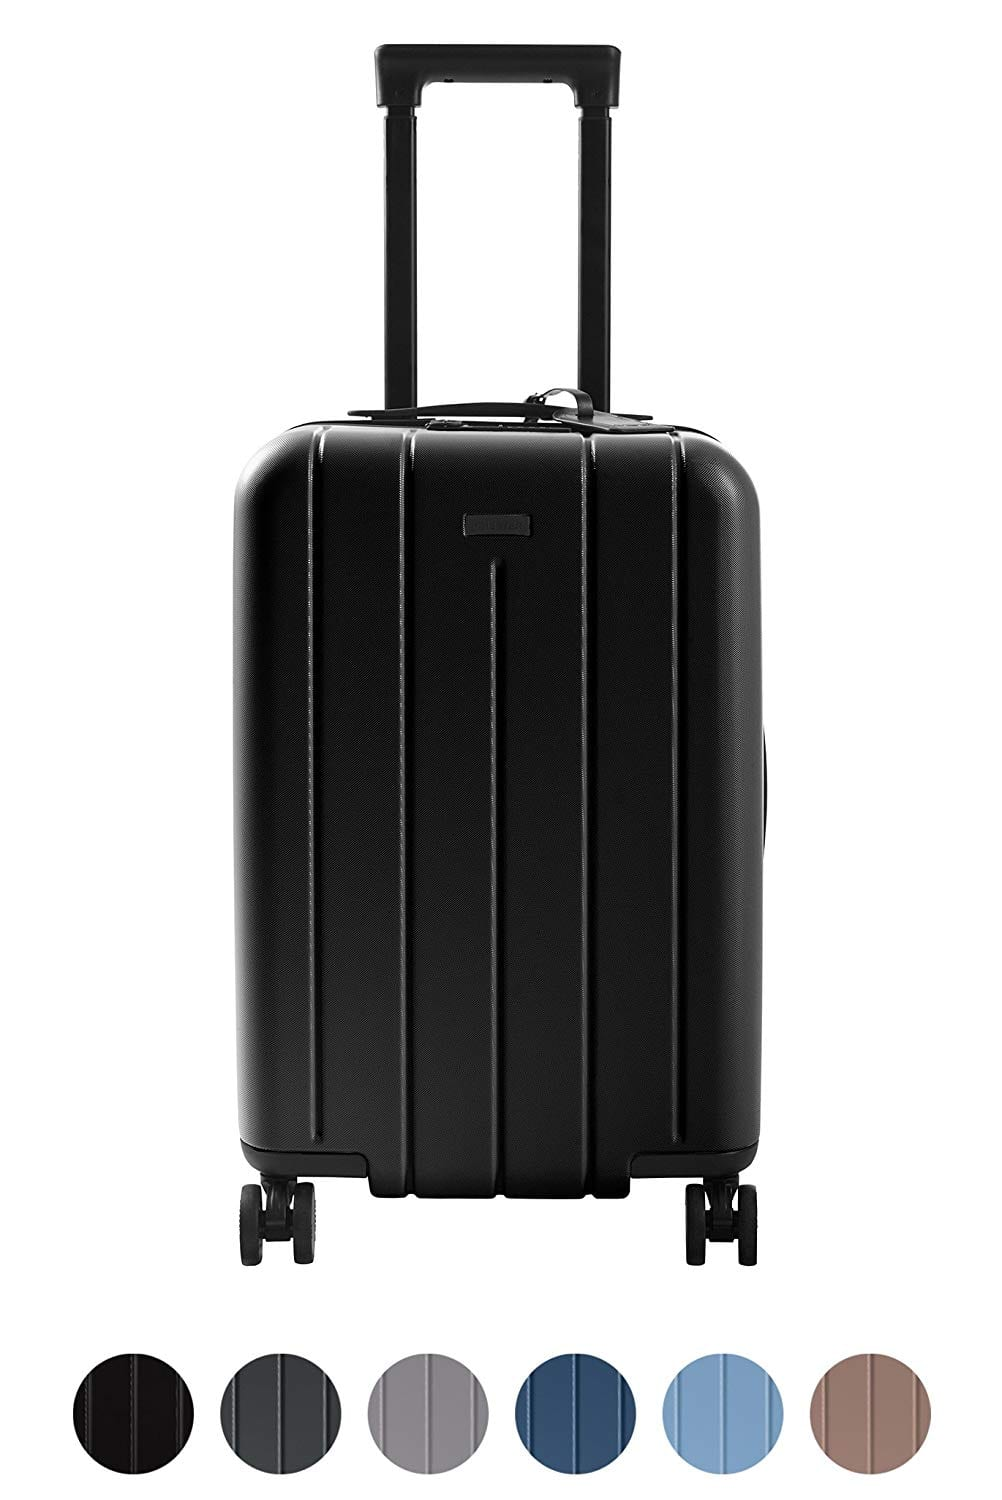 CHESTER Carry-On Luggage Lightweight Suitcase for Men